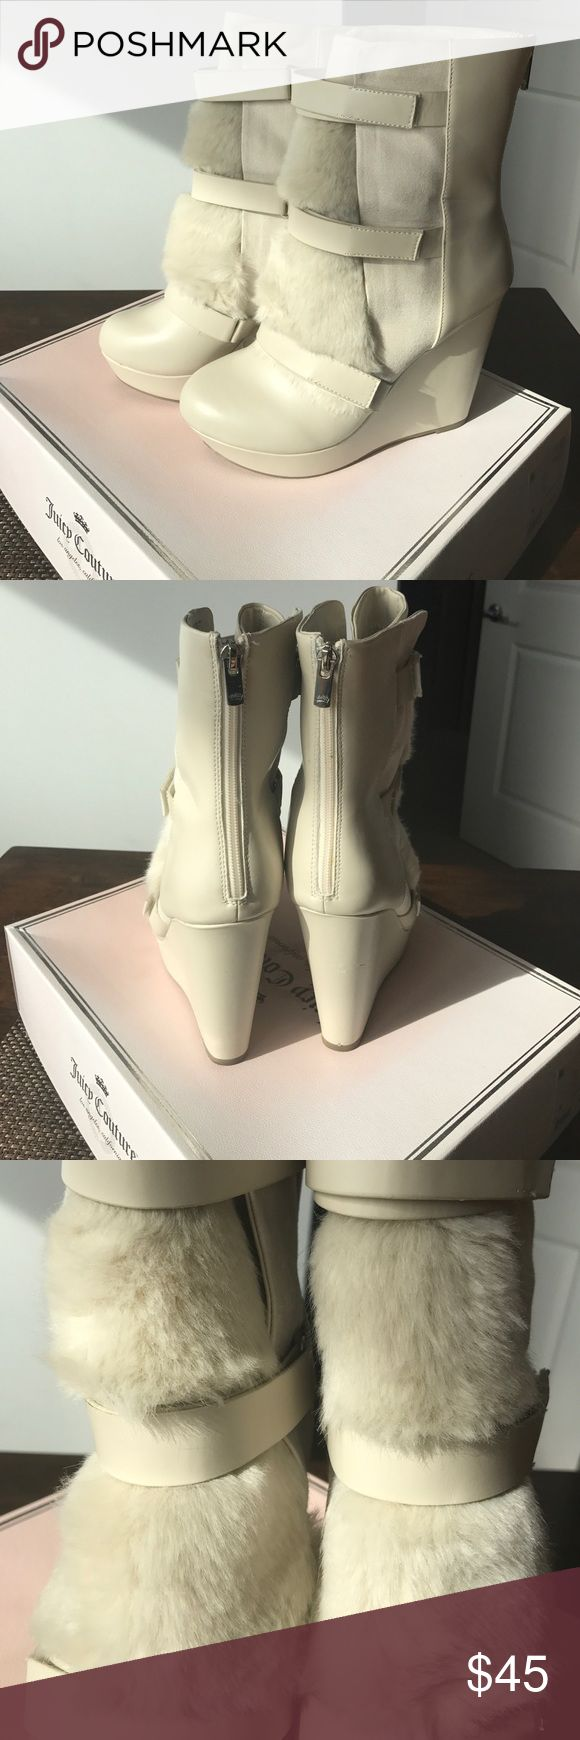 Juicy Couture leather fur wedges Great condition, worn once. Juicy couture fur booties, light tan. Juicy Couture Shoes Heeled Boots